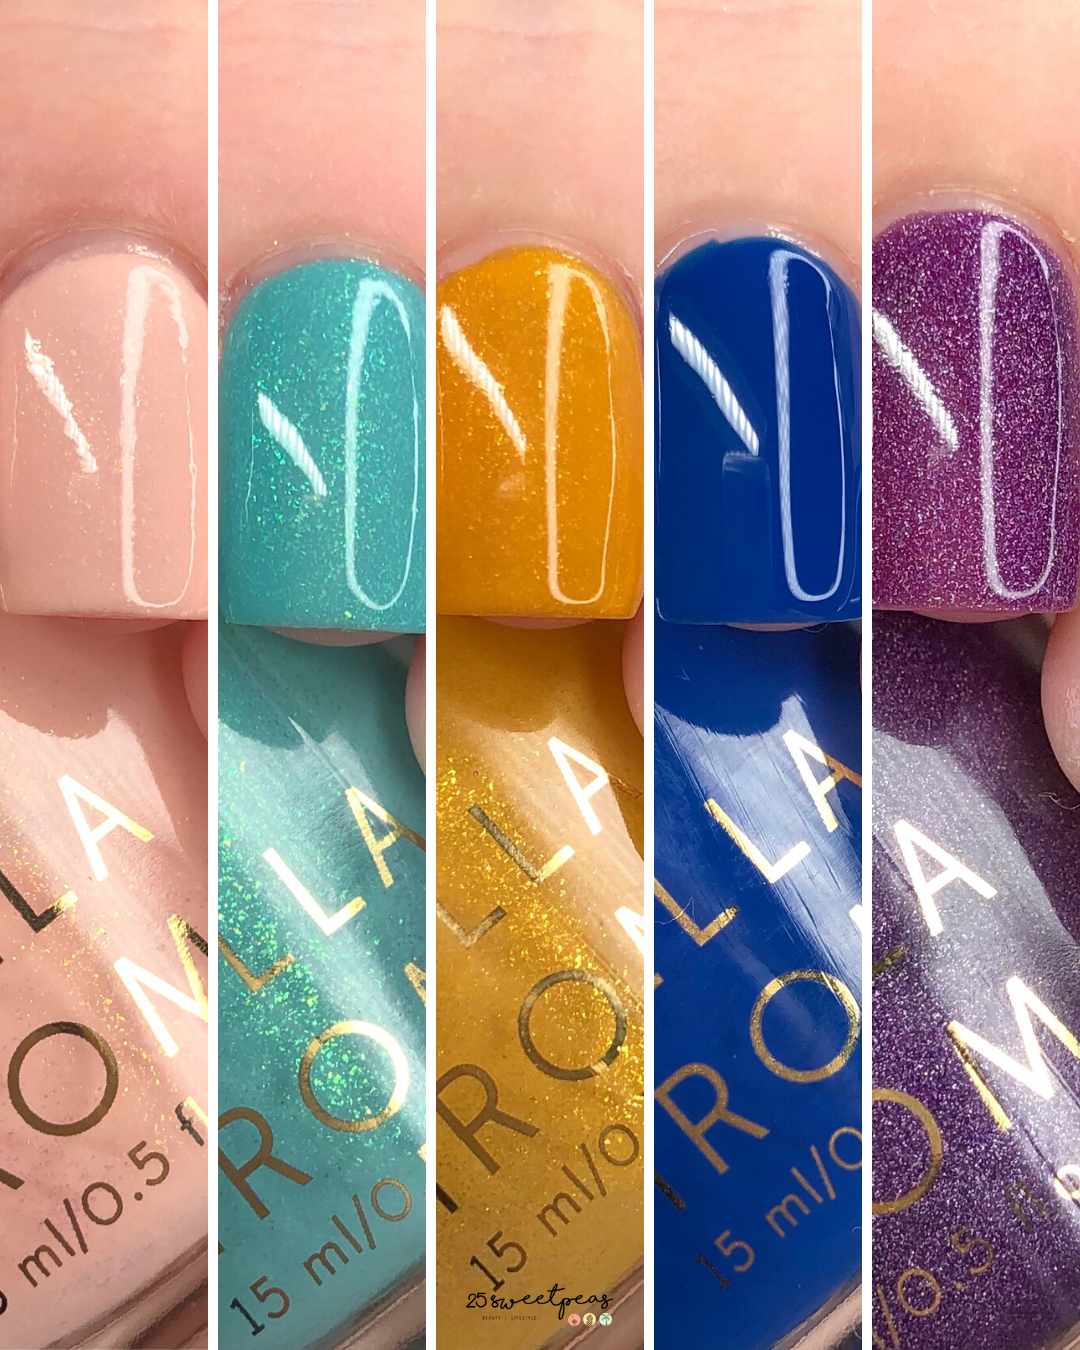 Stella Chroma Desert Scapes Collection